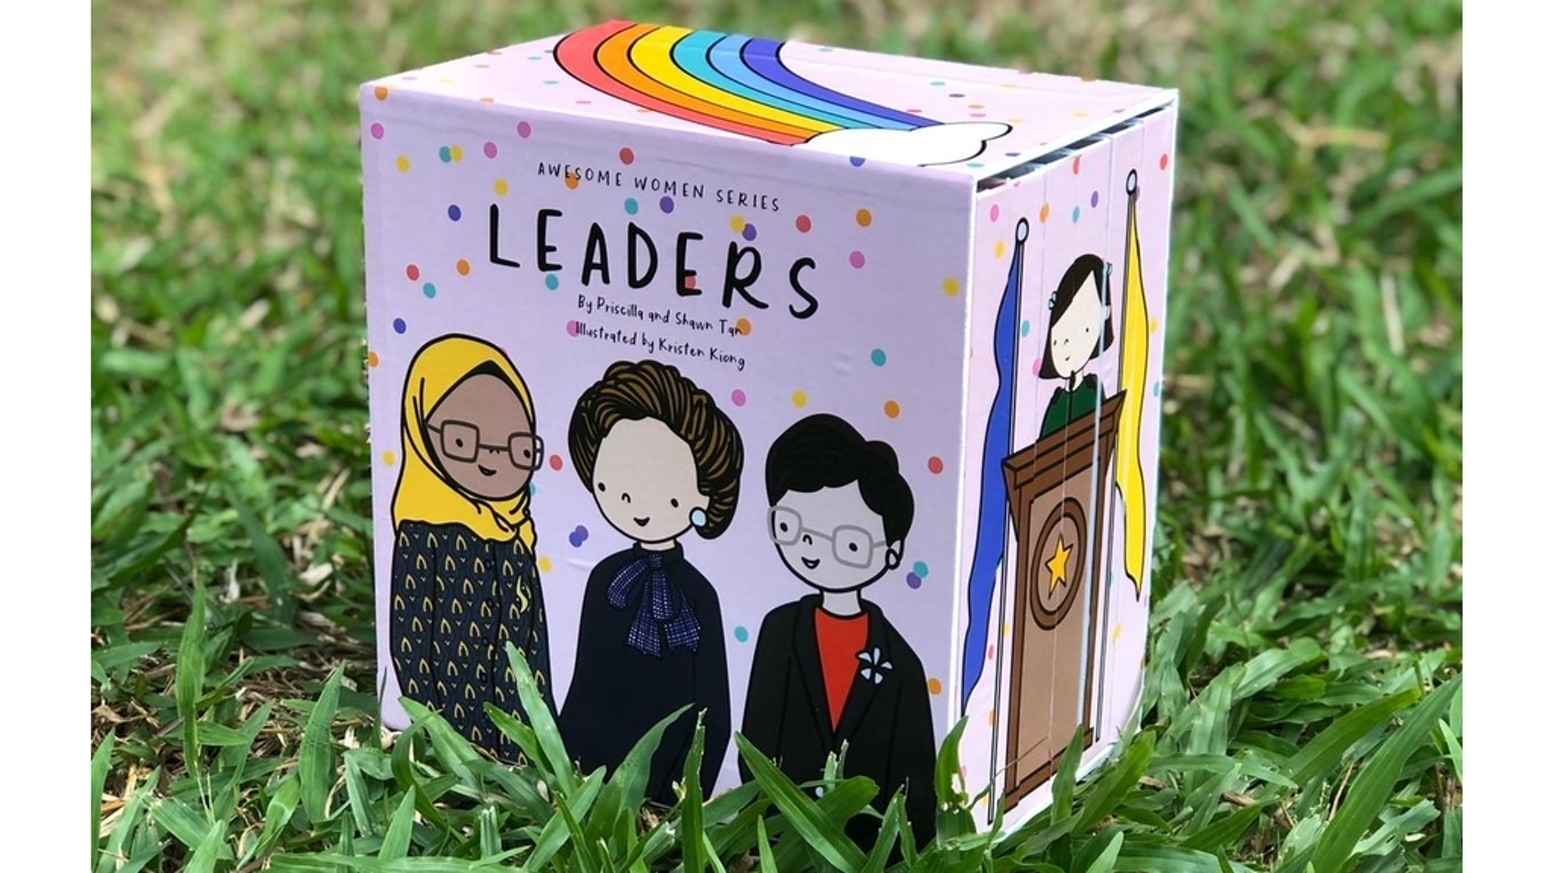 A series of board books featuring awesome female role models to inspire little girls to be anything they want to be. Individual books are available for pre-order too!